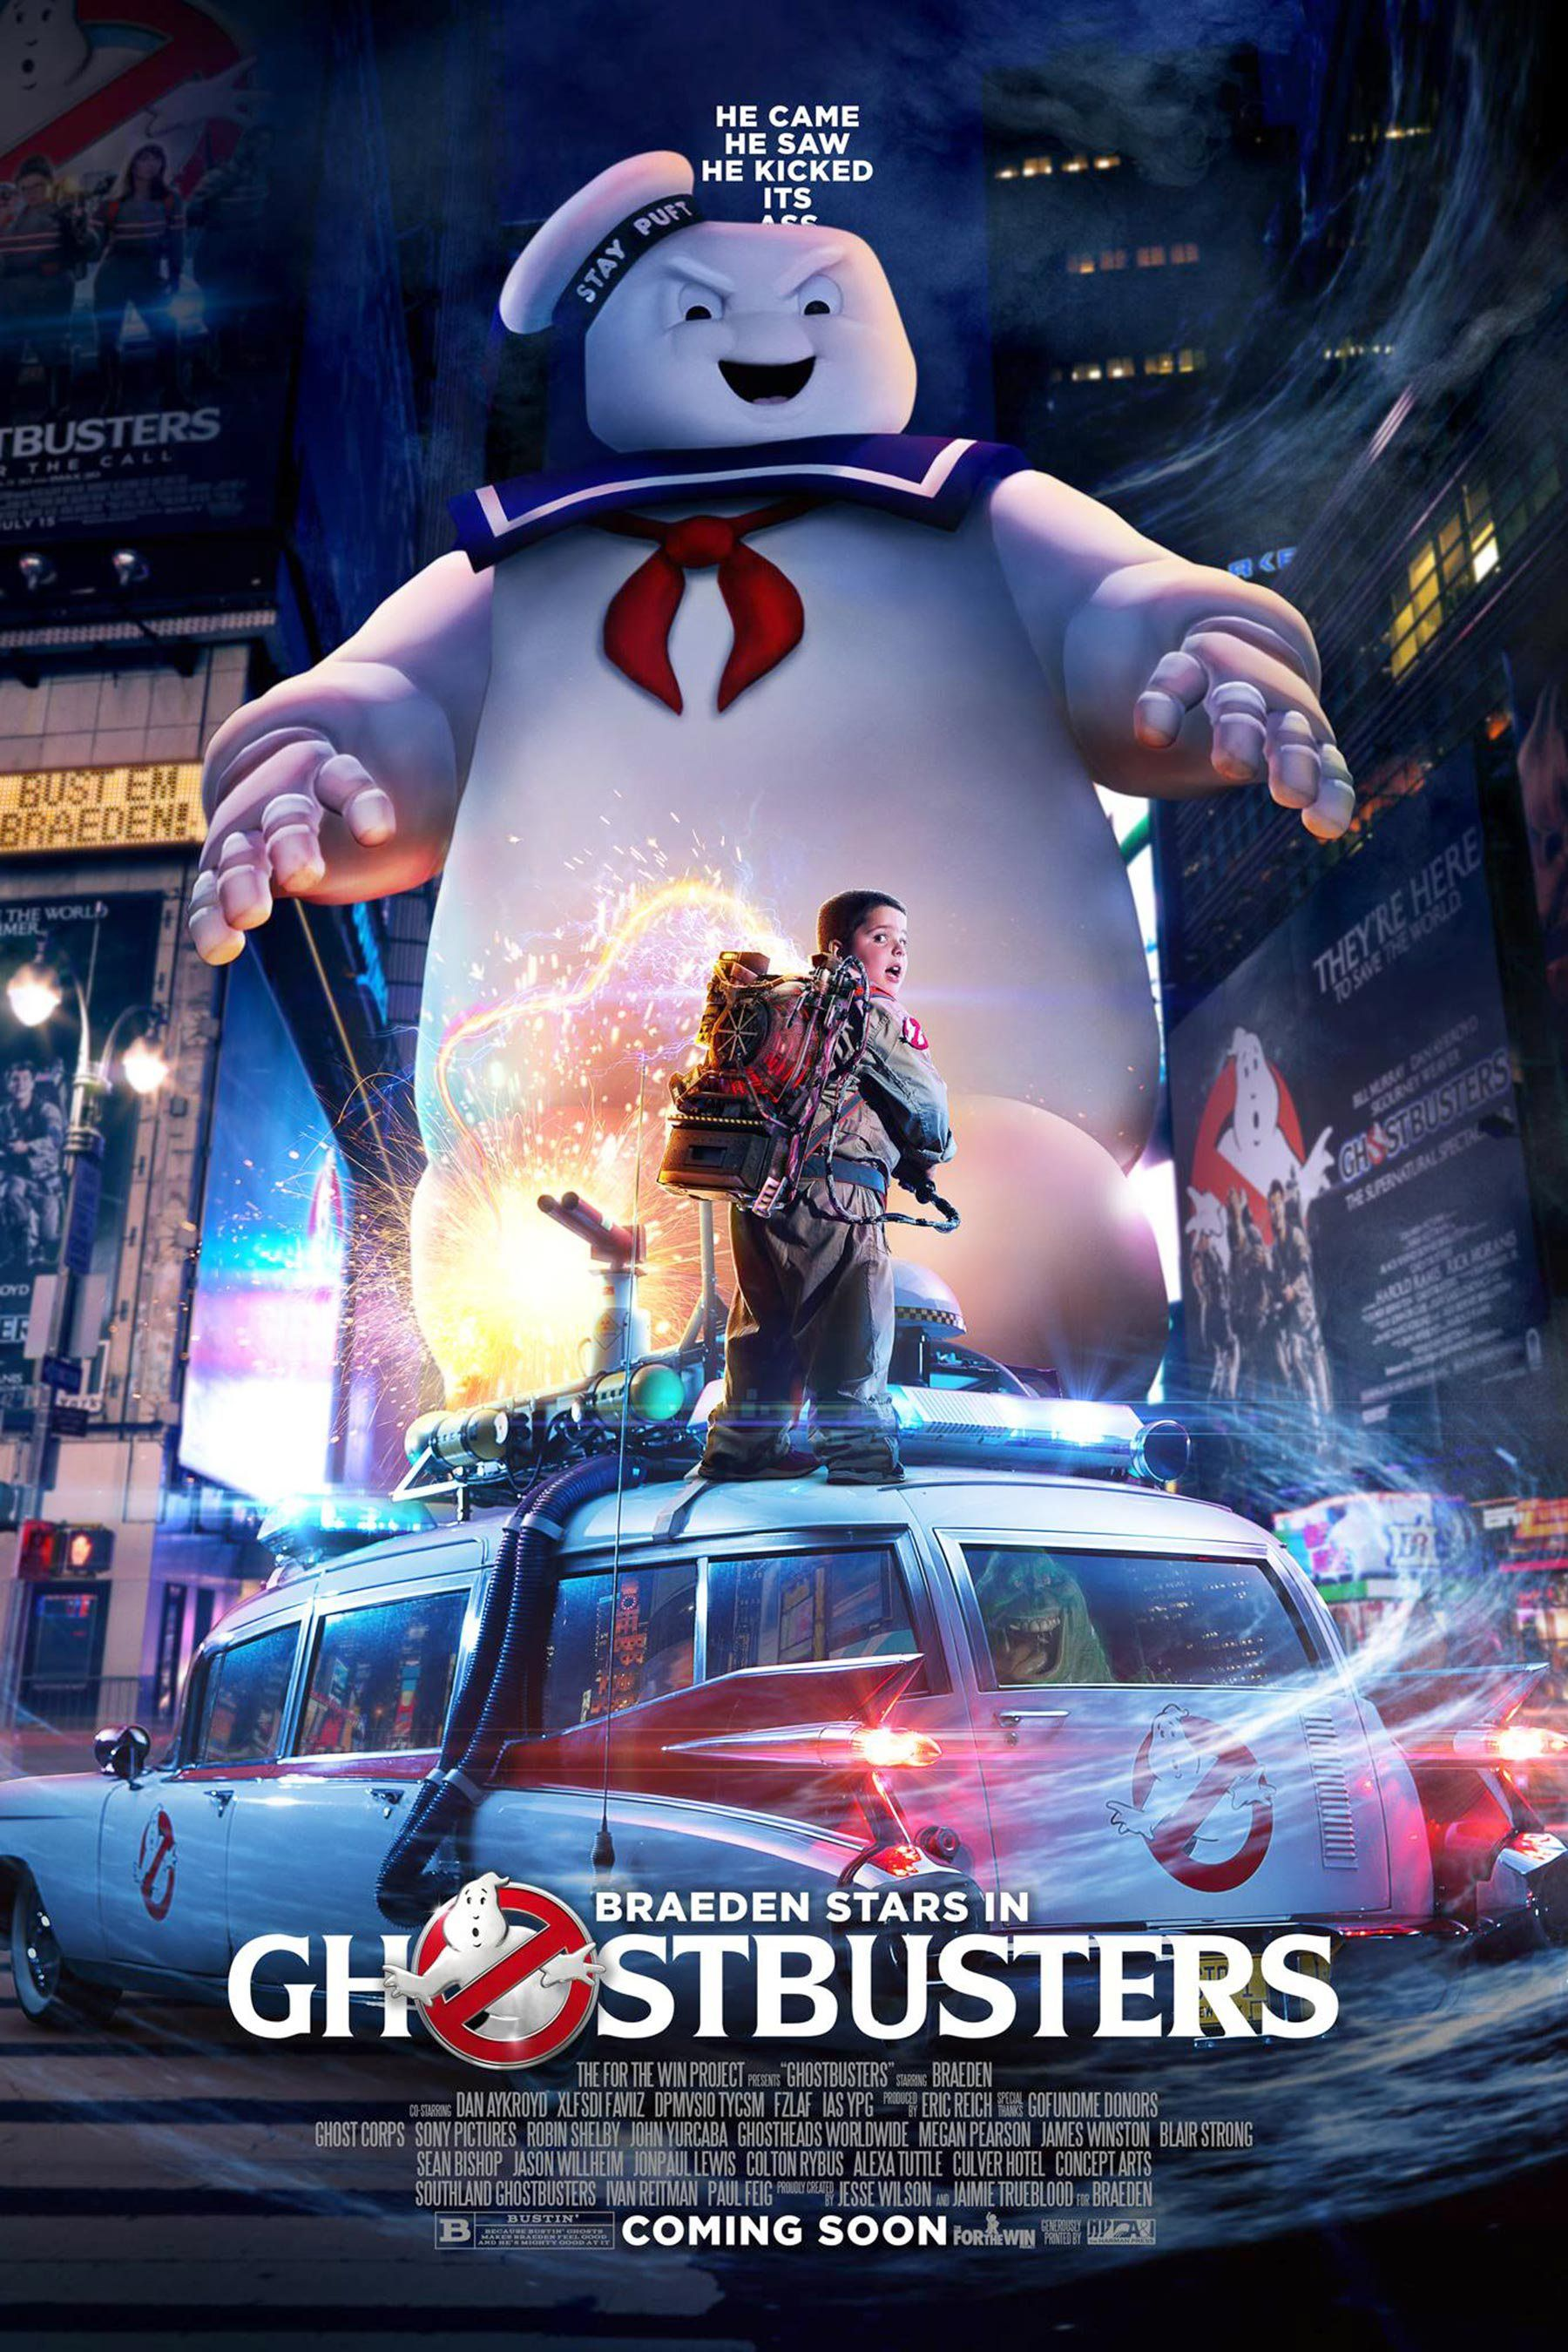 Ghostbusters 2016 Poster Ghostbusters Movie Movie Posters Best Movie Posters